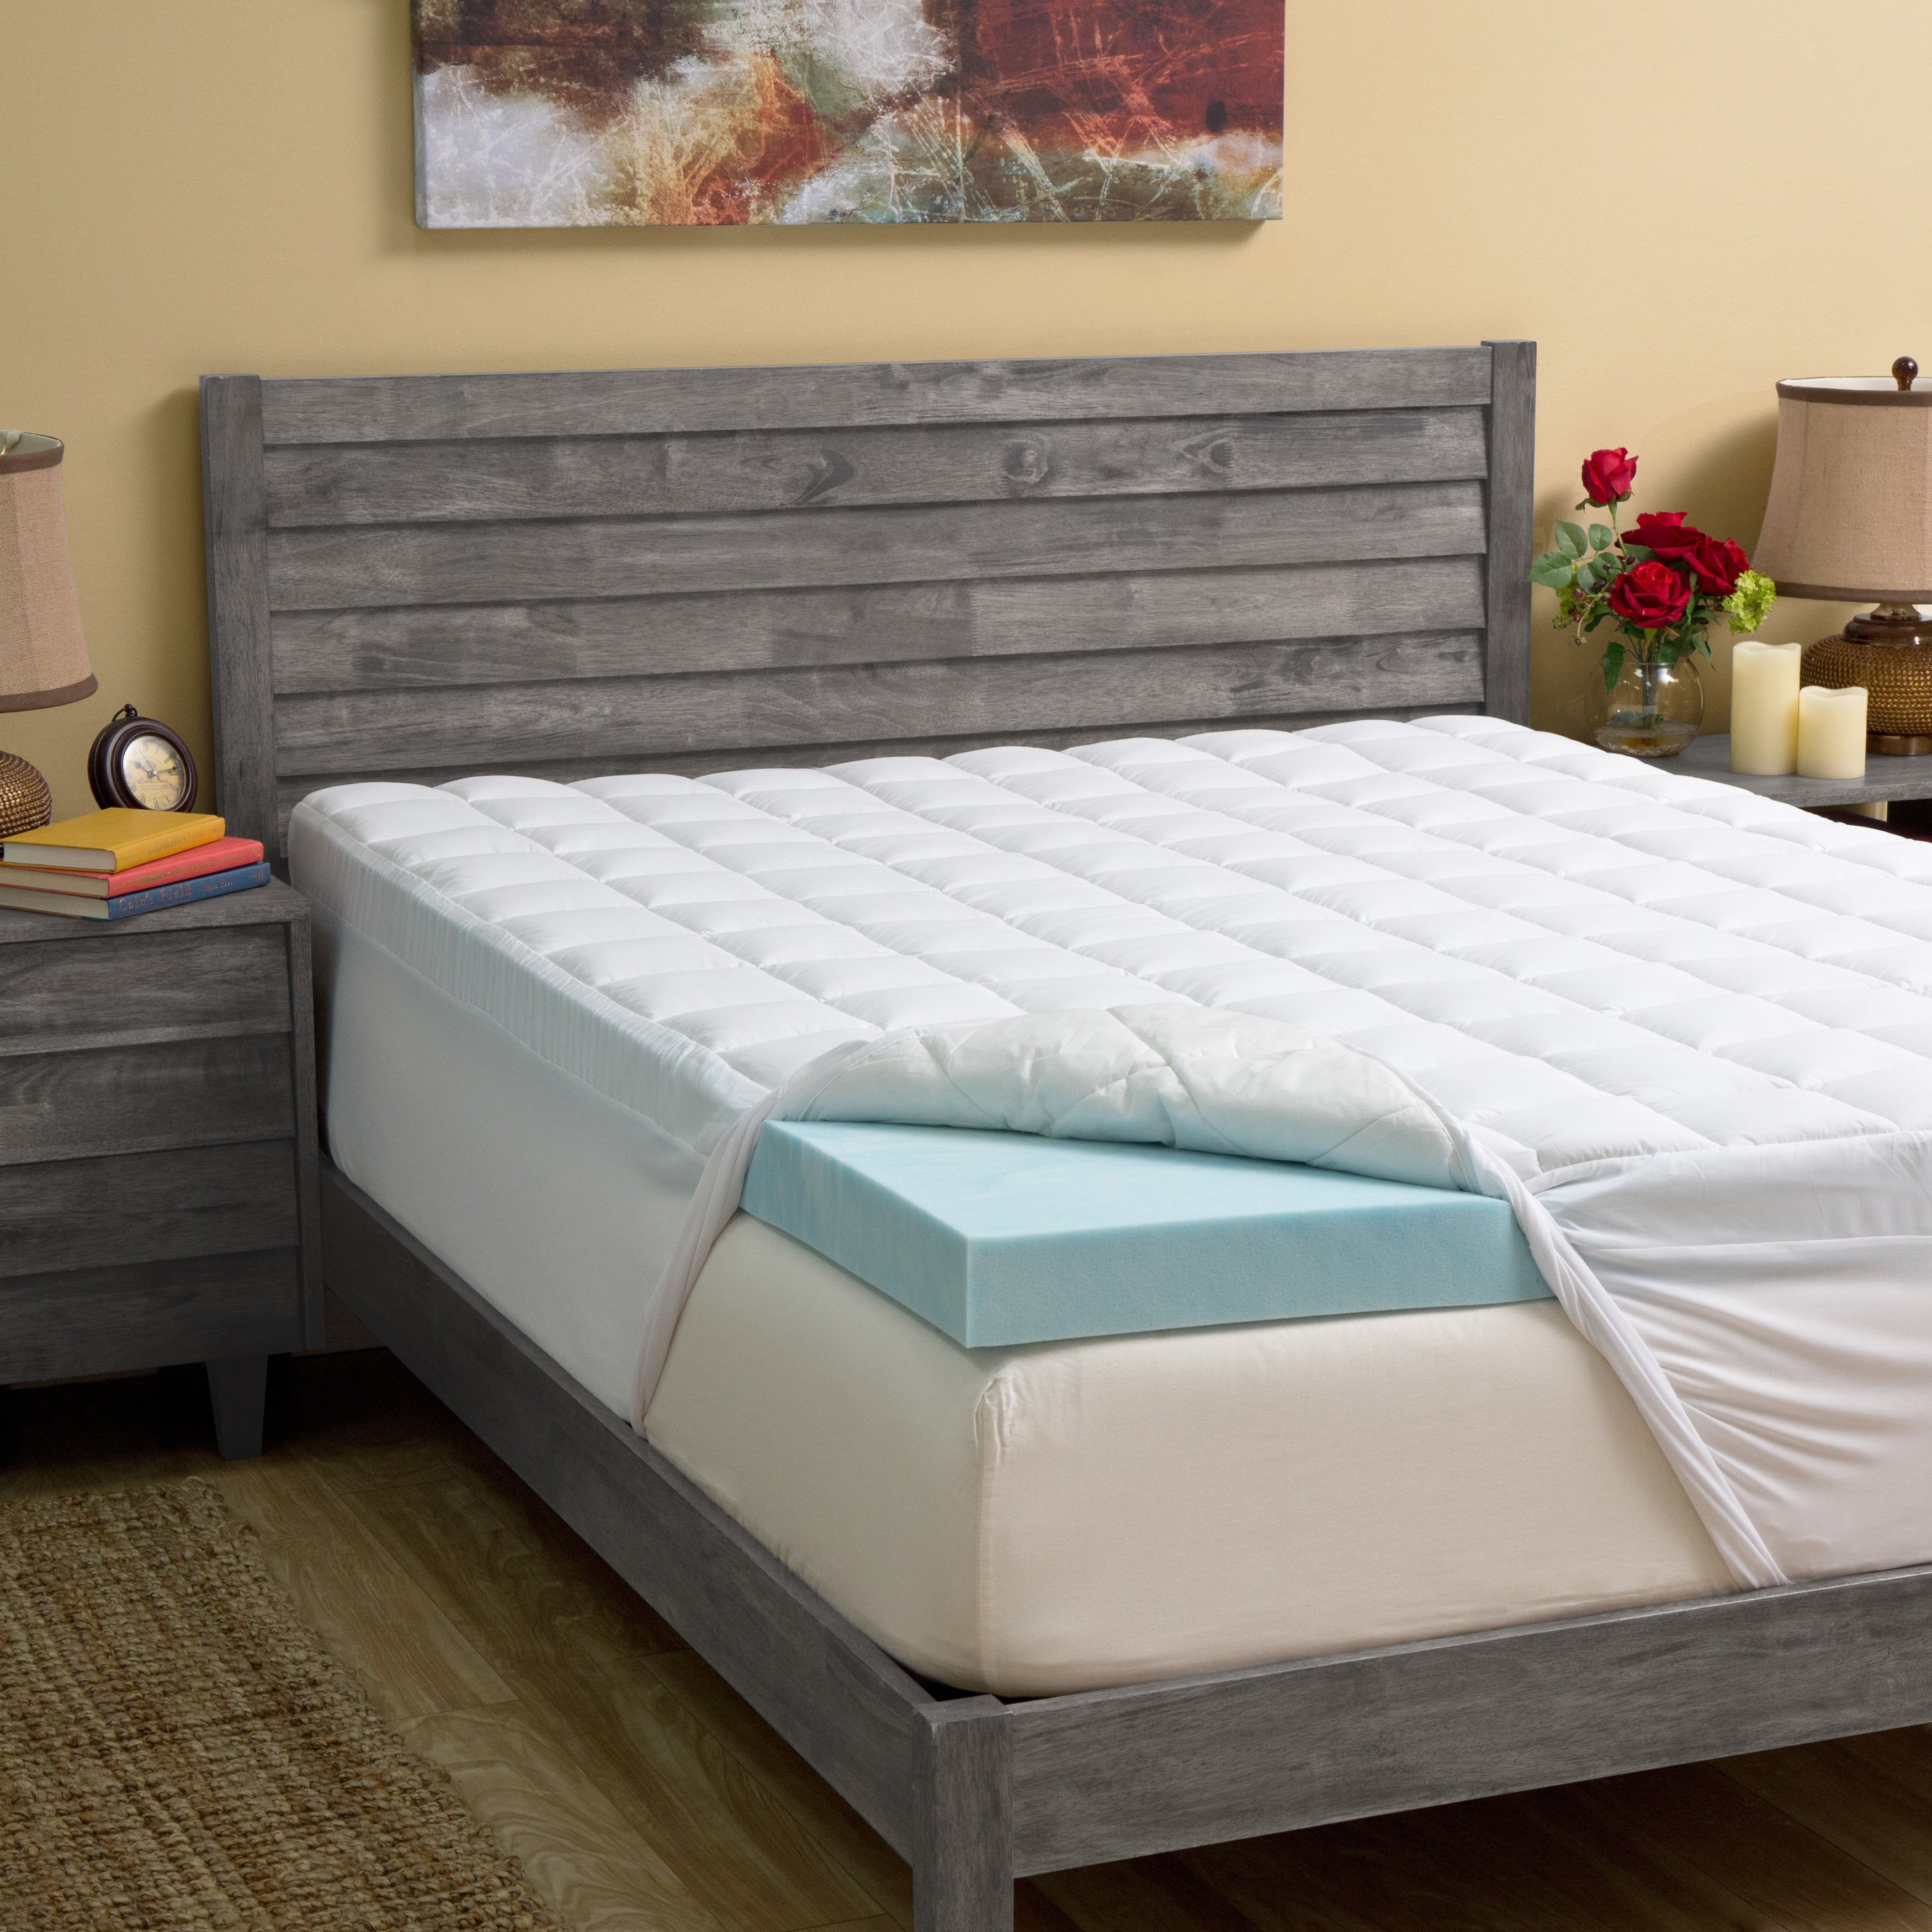 Grande Hotel Collection 4.5-inch Gel Memory Foam and Fibe...